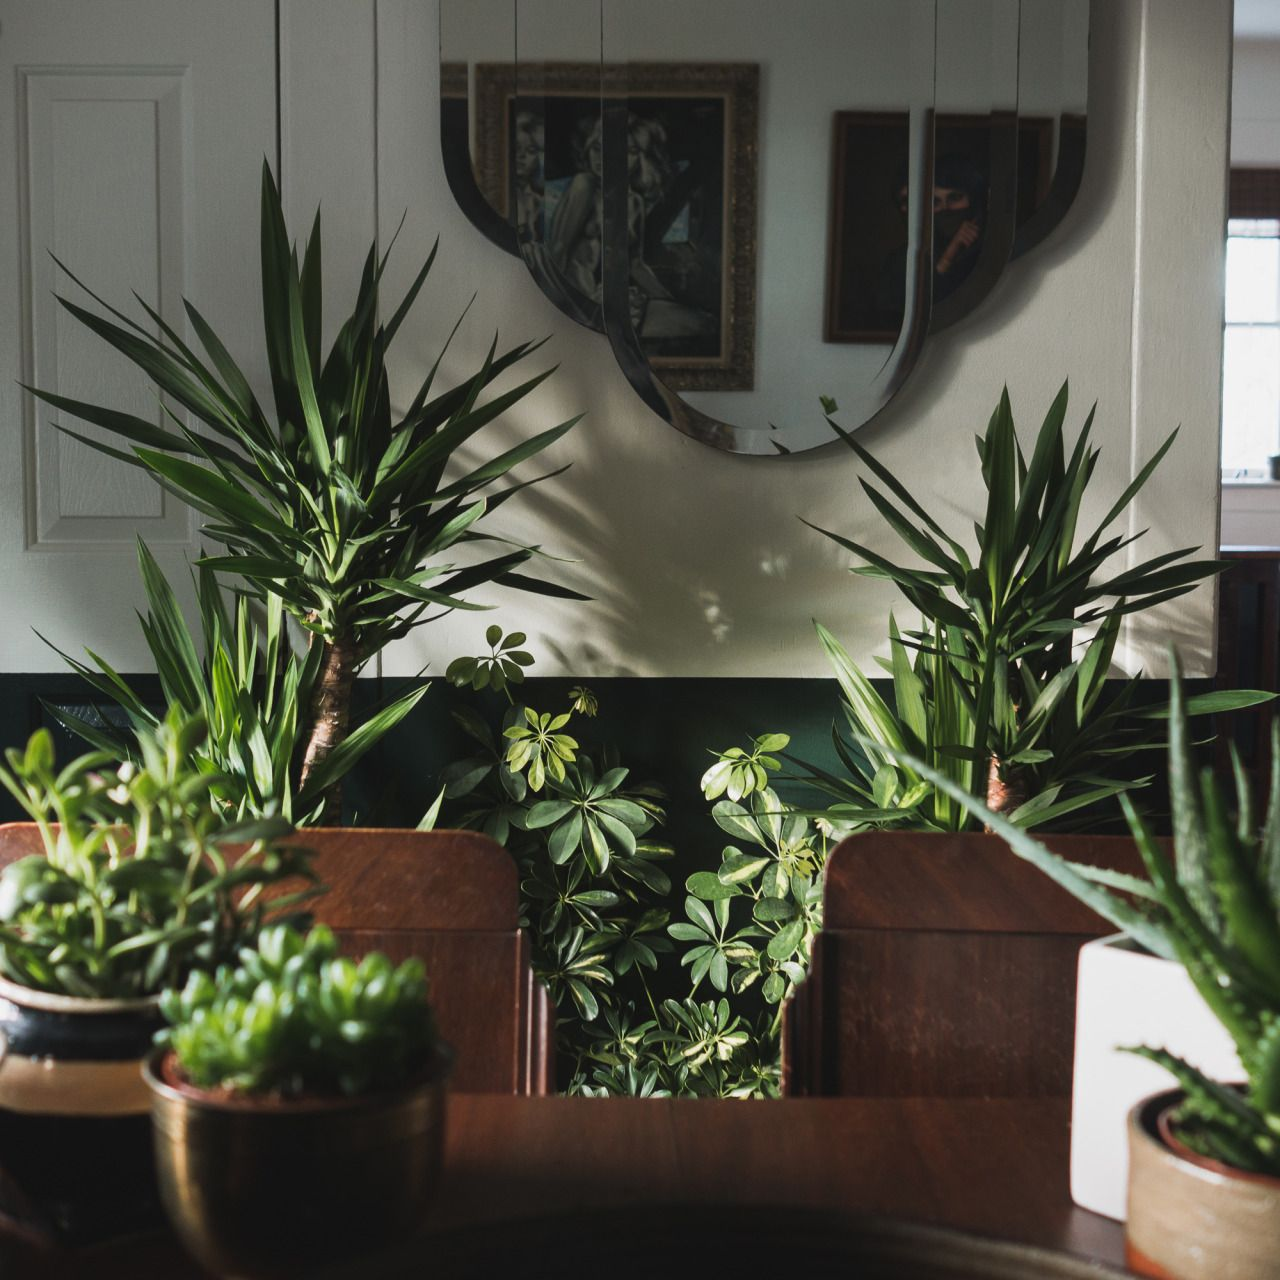 Plants rule everything around me. (With images) Plants